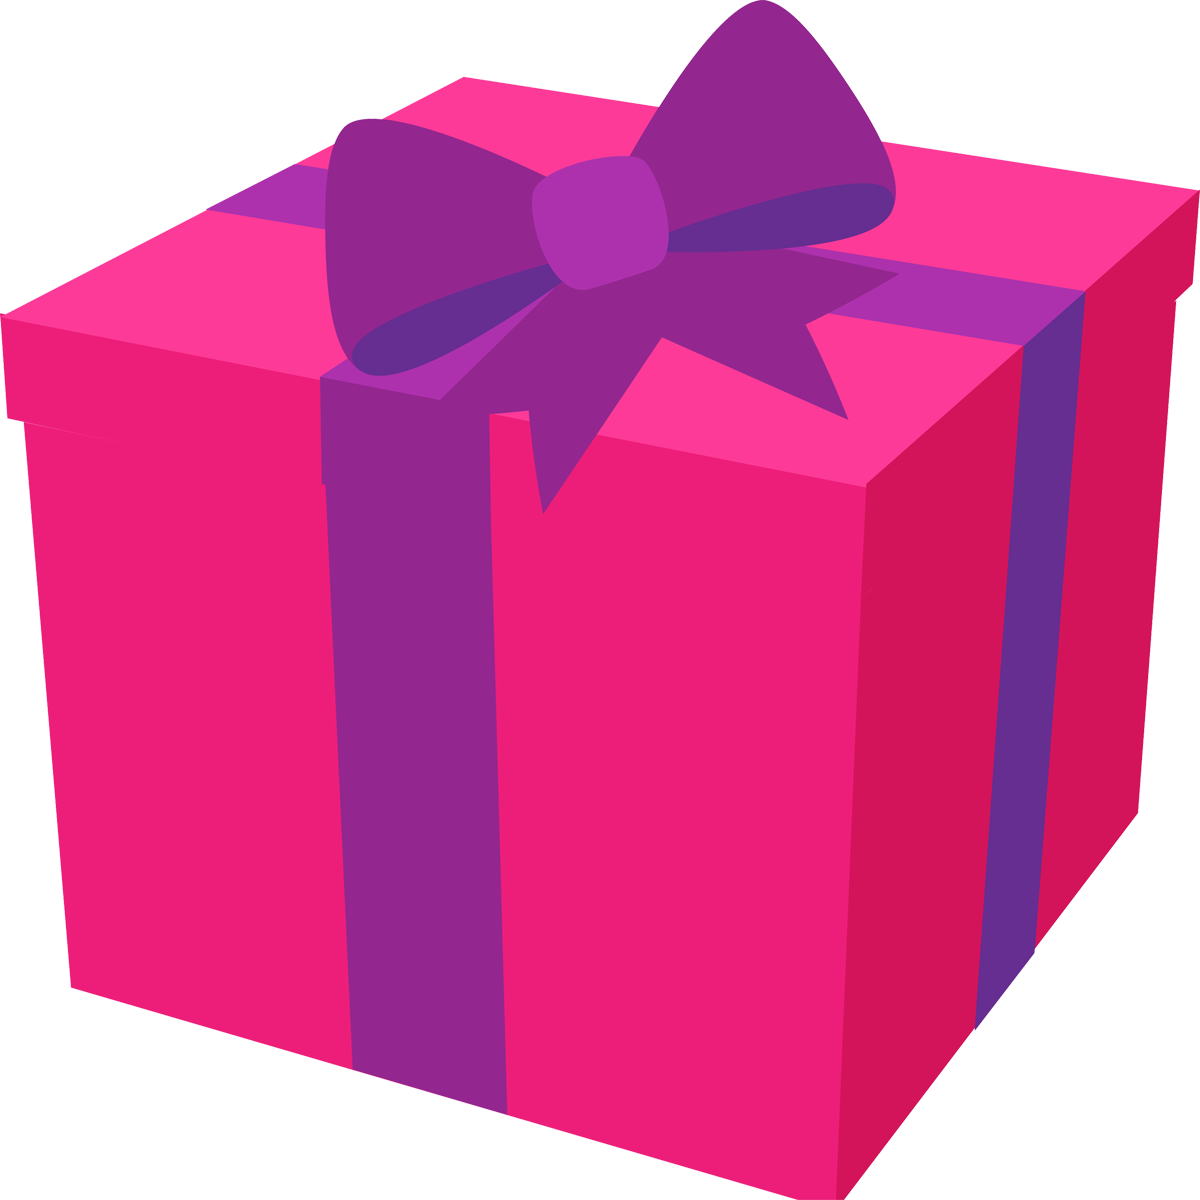 Gift at getdrawings com. Present clipart birthday stuff jpg transparent